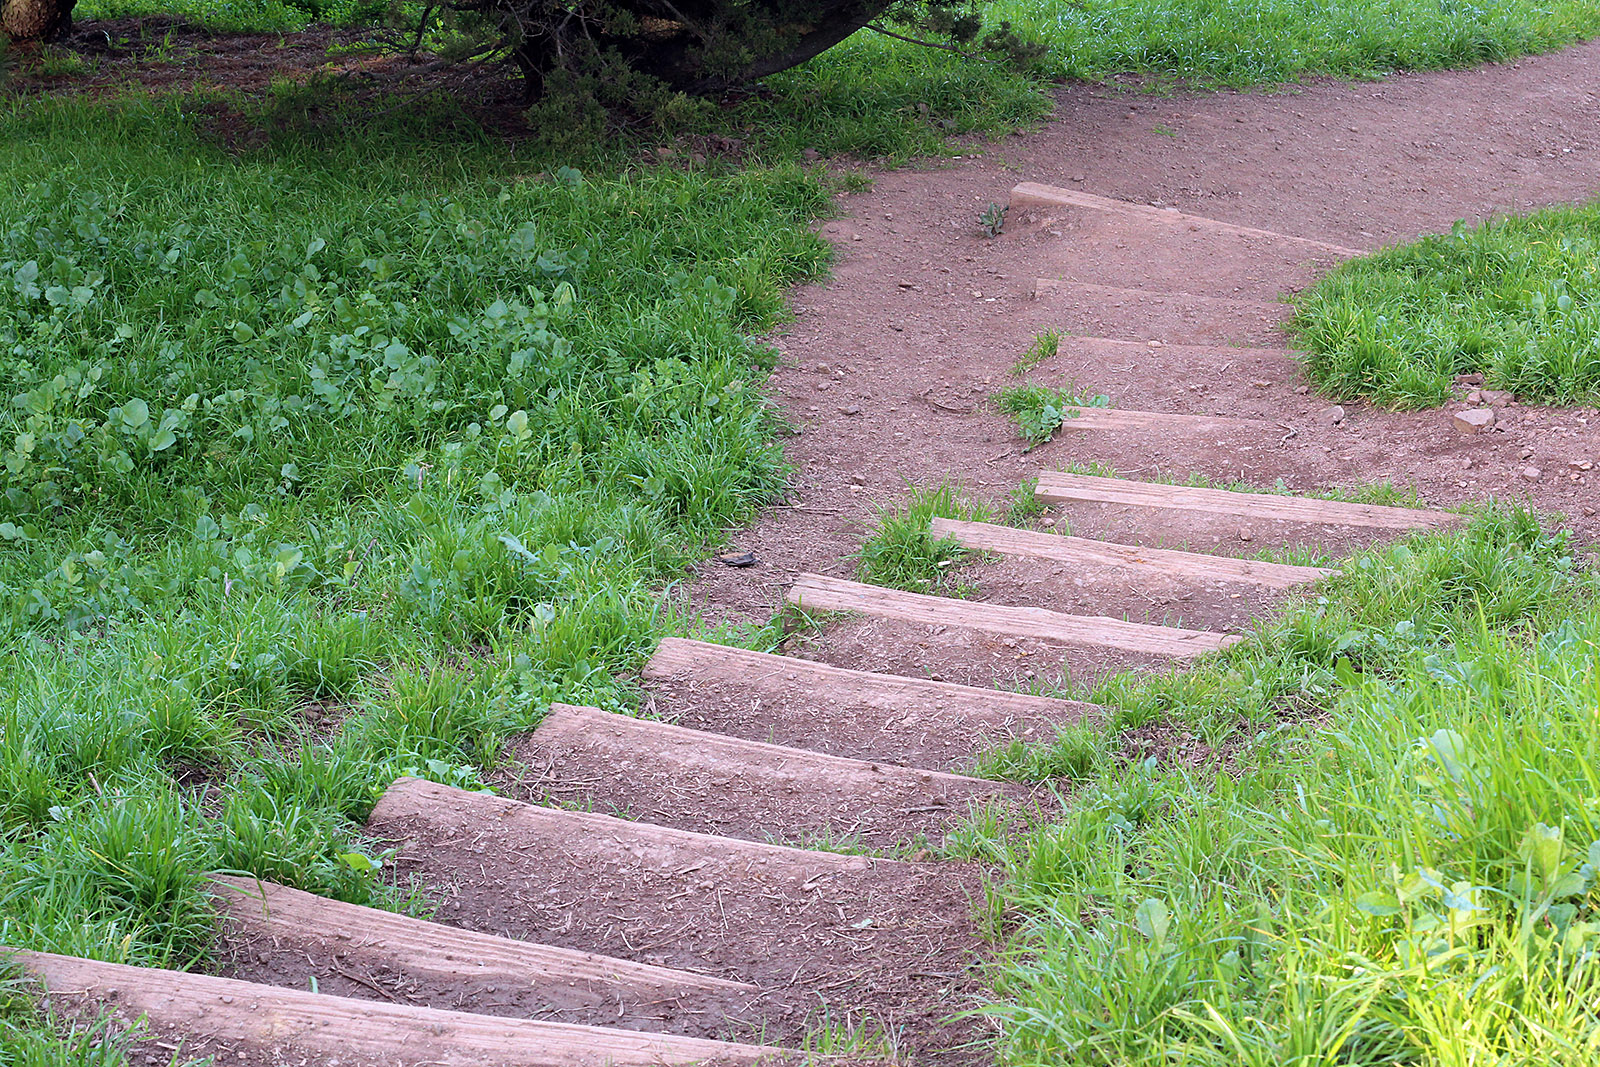 The path from Bernal Heights into the Mission.